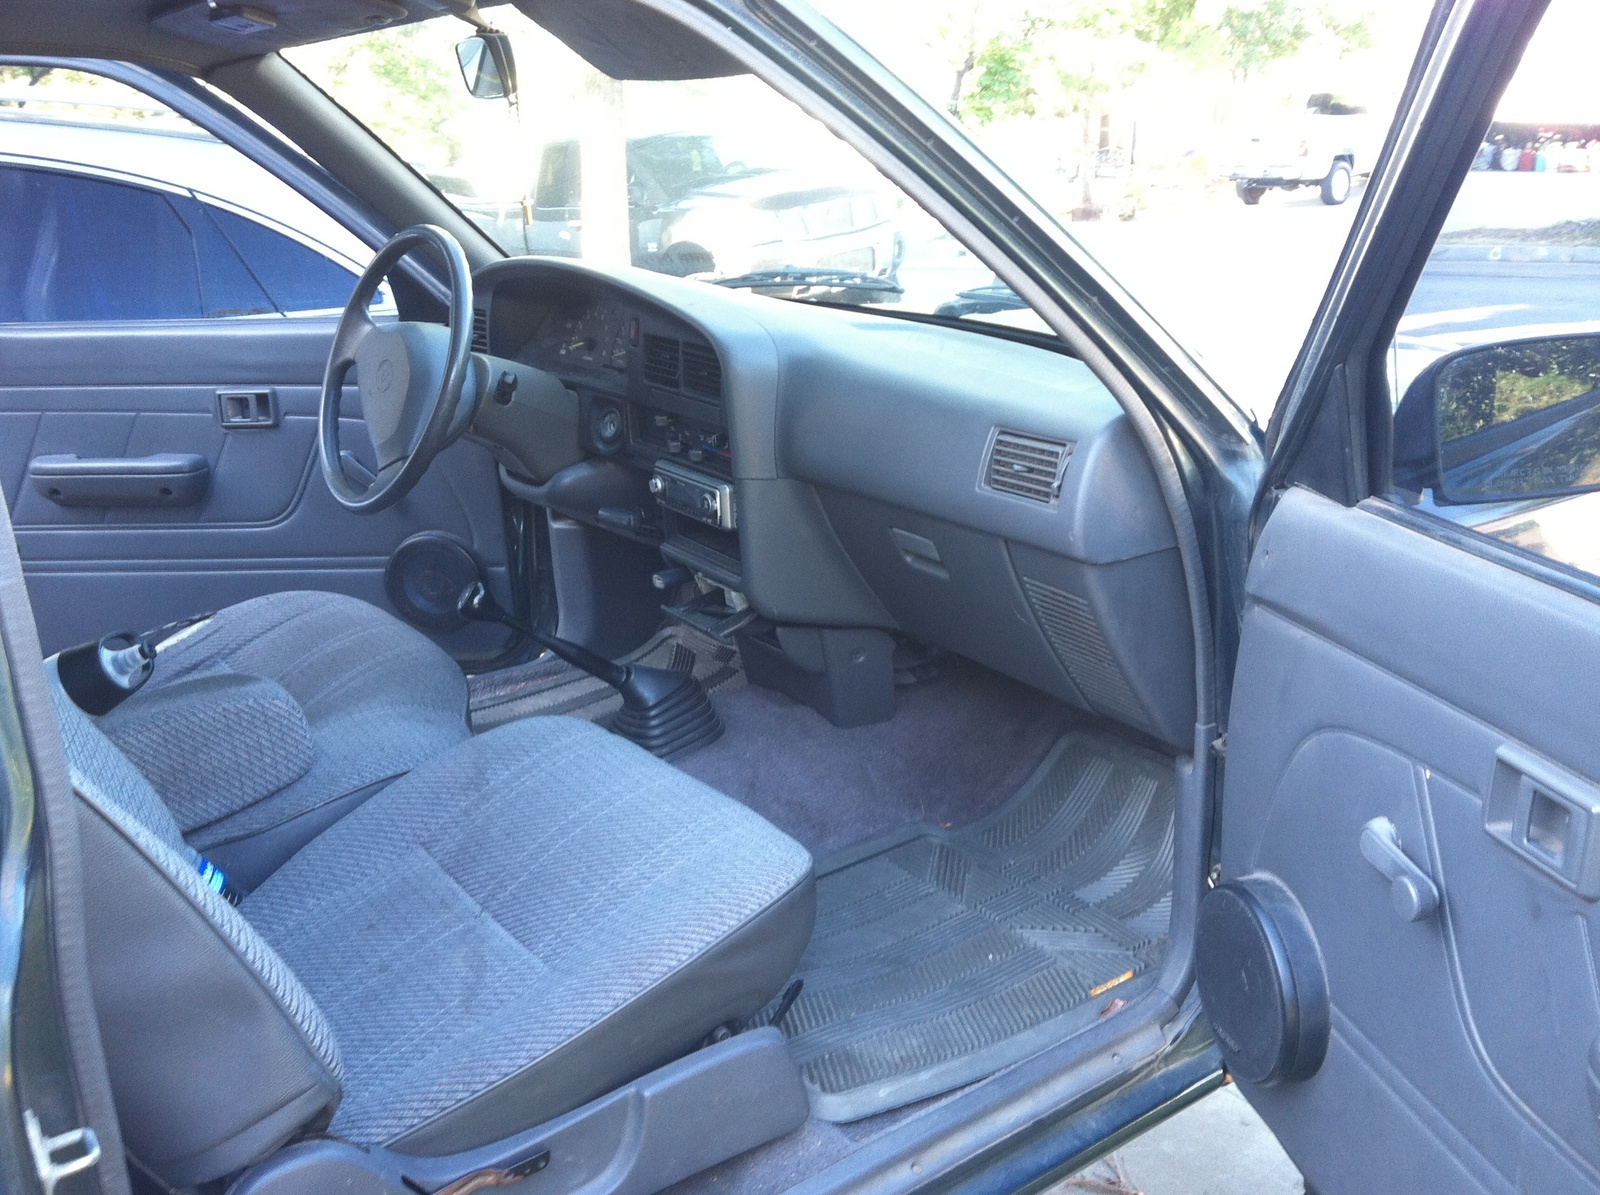 1994 Toyota Pickup Interior Parts Pictures To Pin On